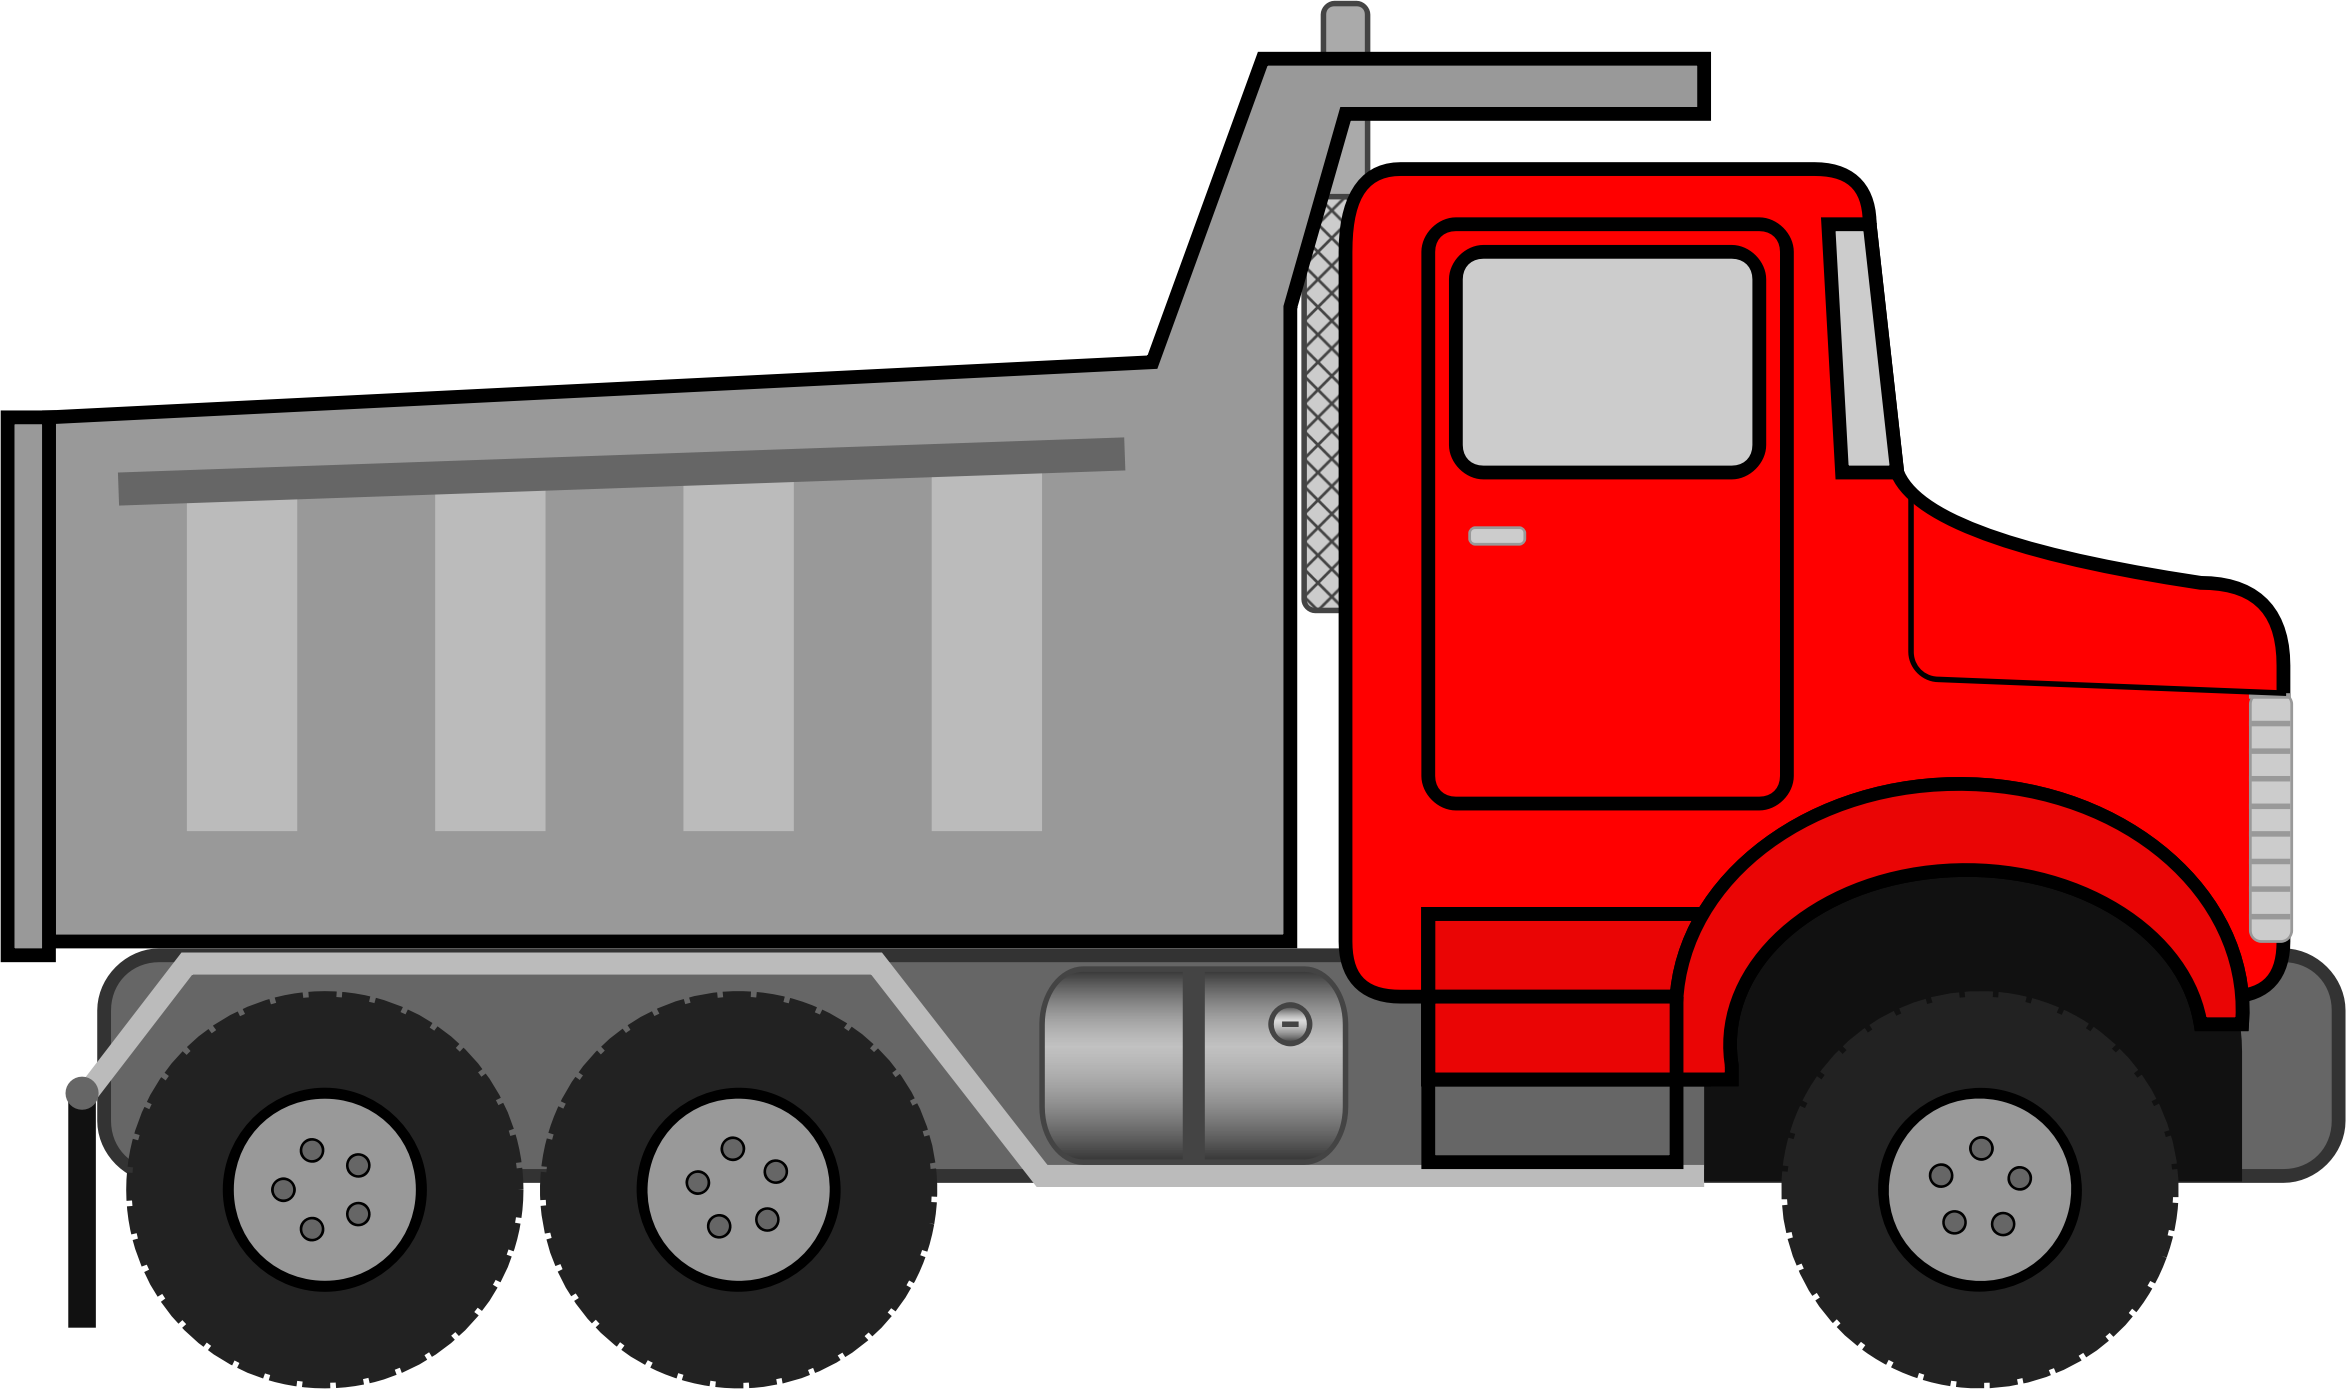 """<span class=""""entry-title-primary"""">Truck Labels Market: Research, Analysis, Industry</span> <span class=""""entry-subtitle"""">Truck Labels Market Share</span><span class=""""rating-result after_title mr-filter rating-result-45278"""" ><span class=""""no-rating-results-text"""">No ratings yet.</span></span>"""